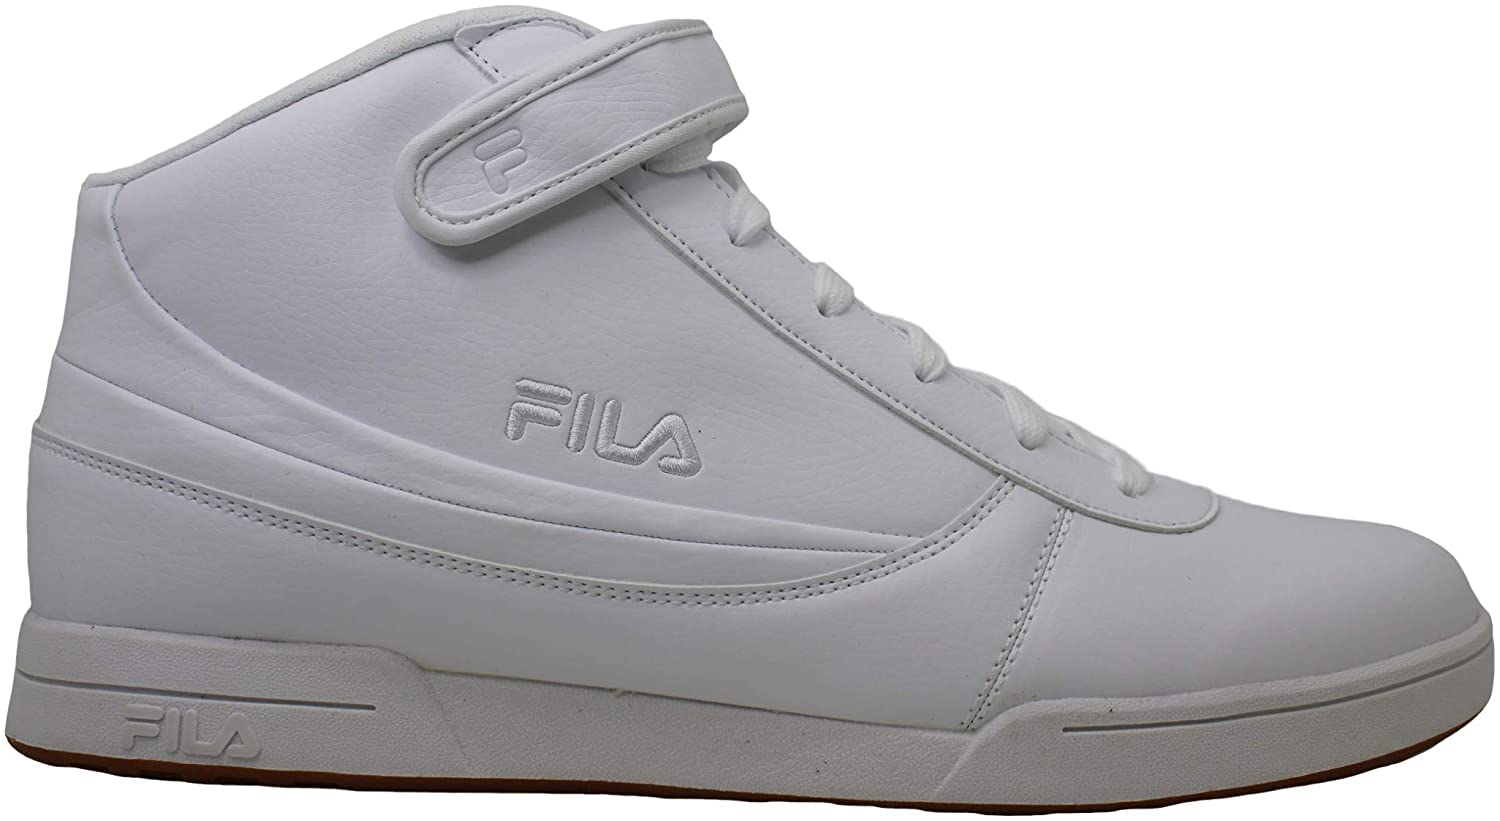 Fila Mens F89 Hight Top Lace Up Basketball Shoes